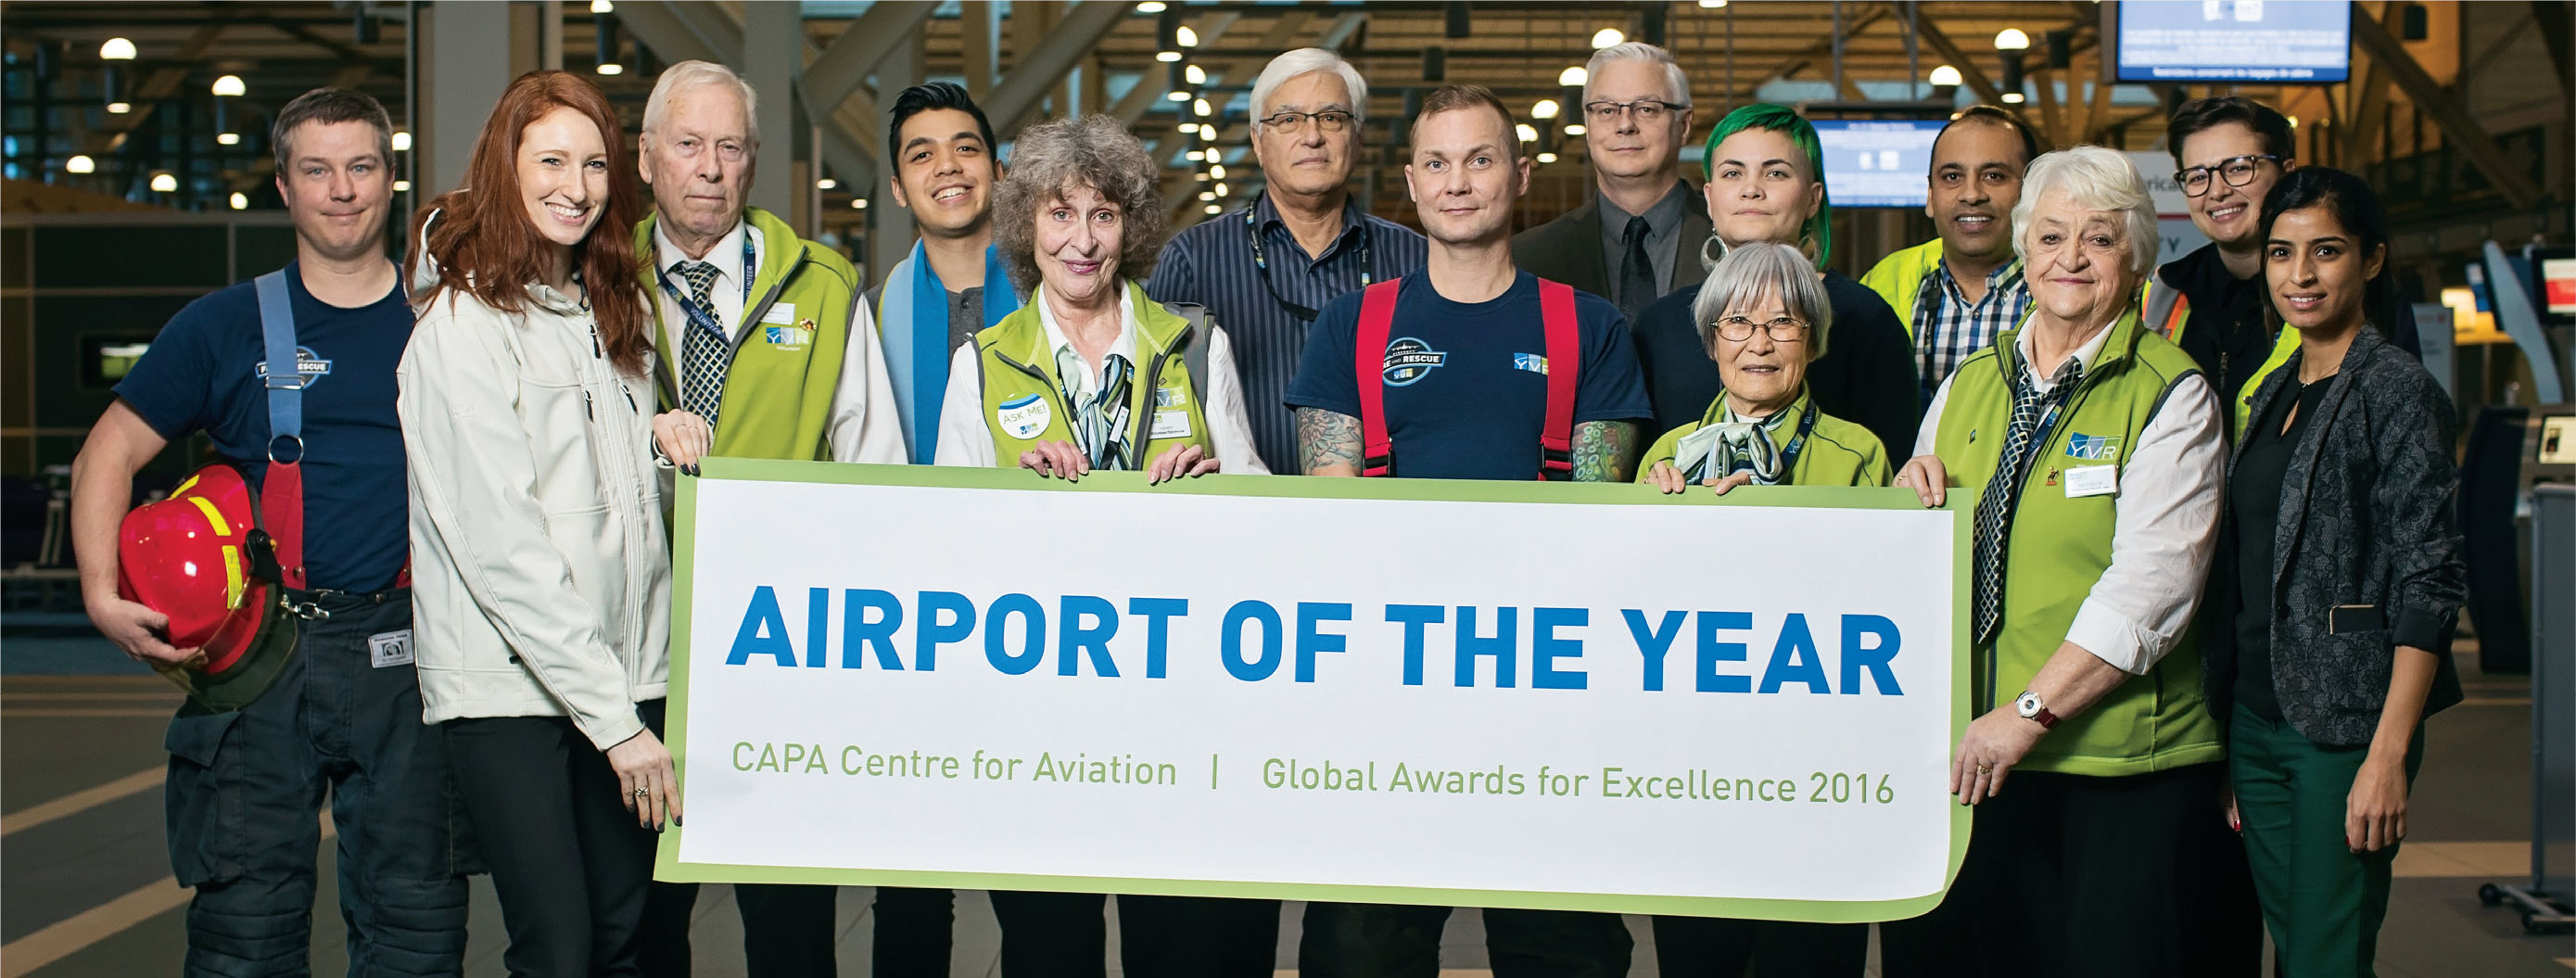 Airport of the Year